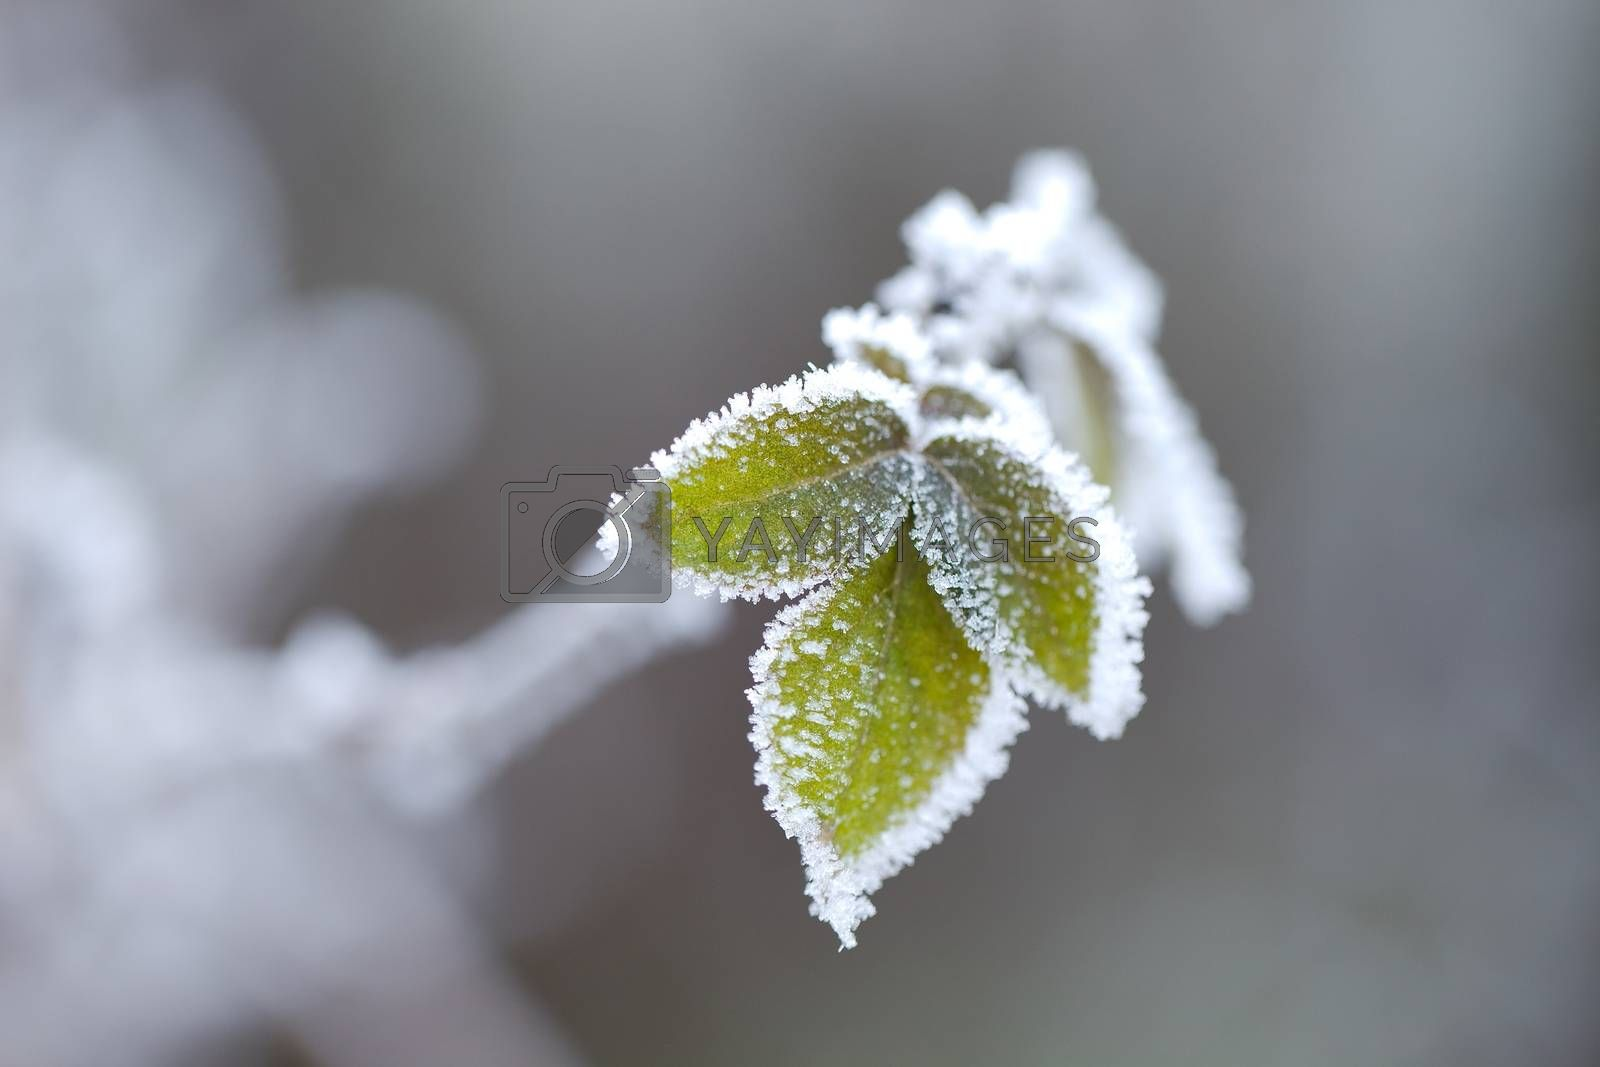 Frozen leaves of a plant in winter